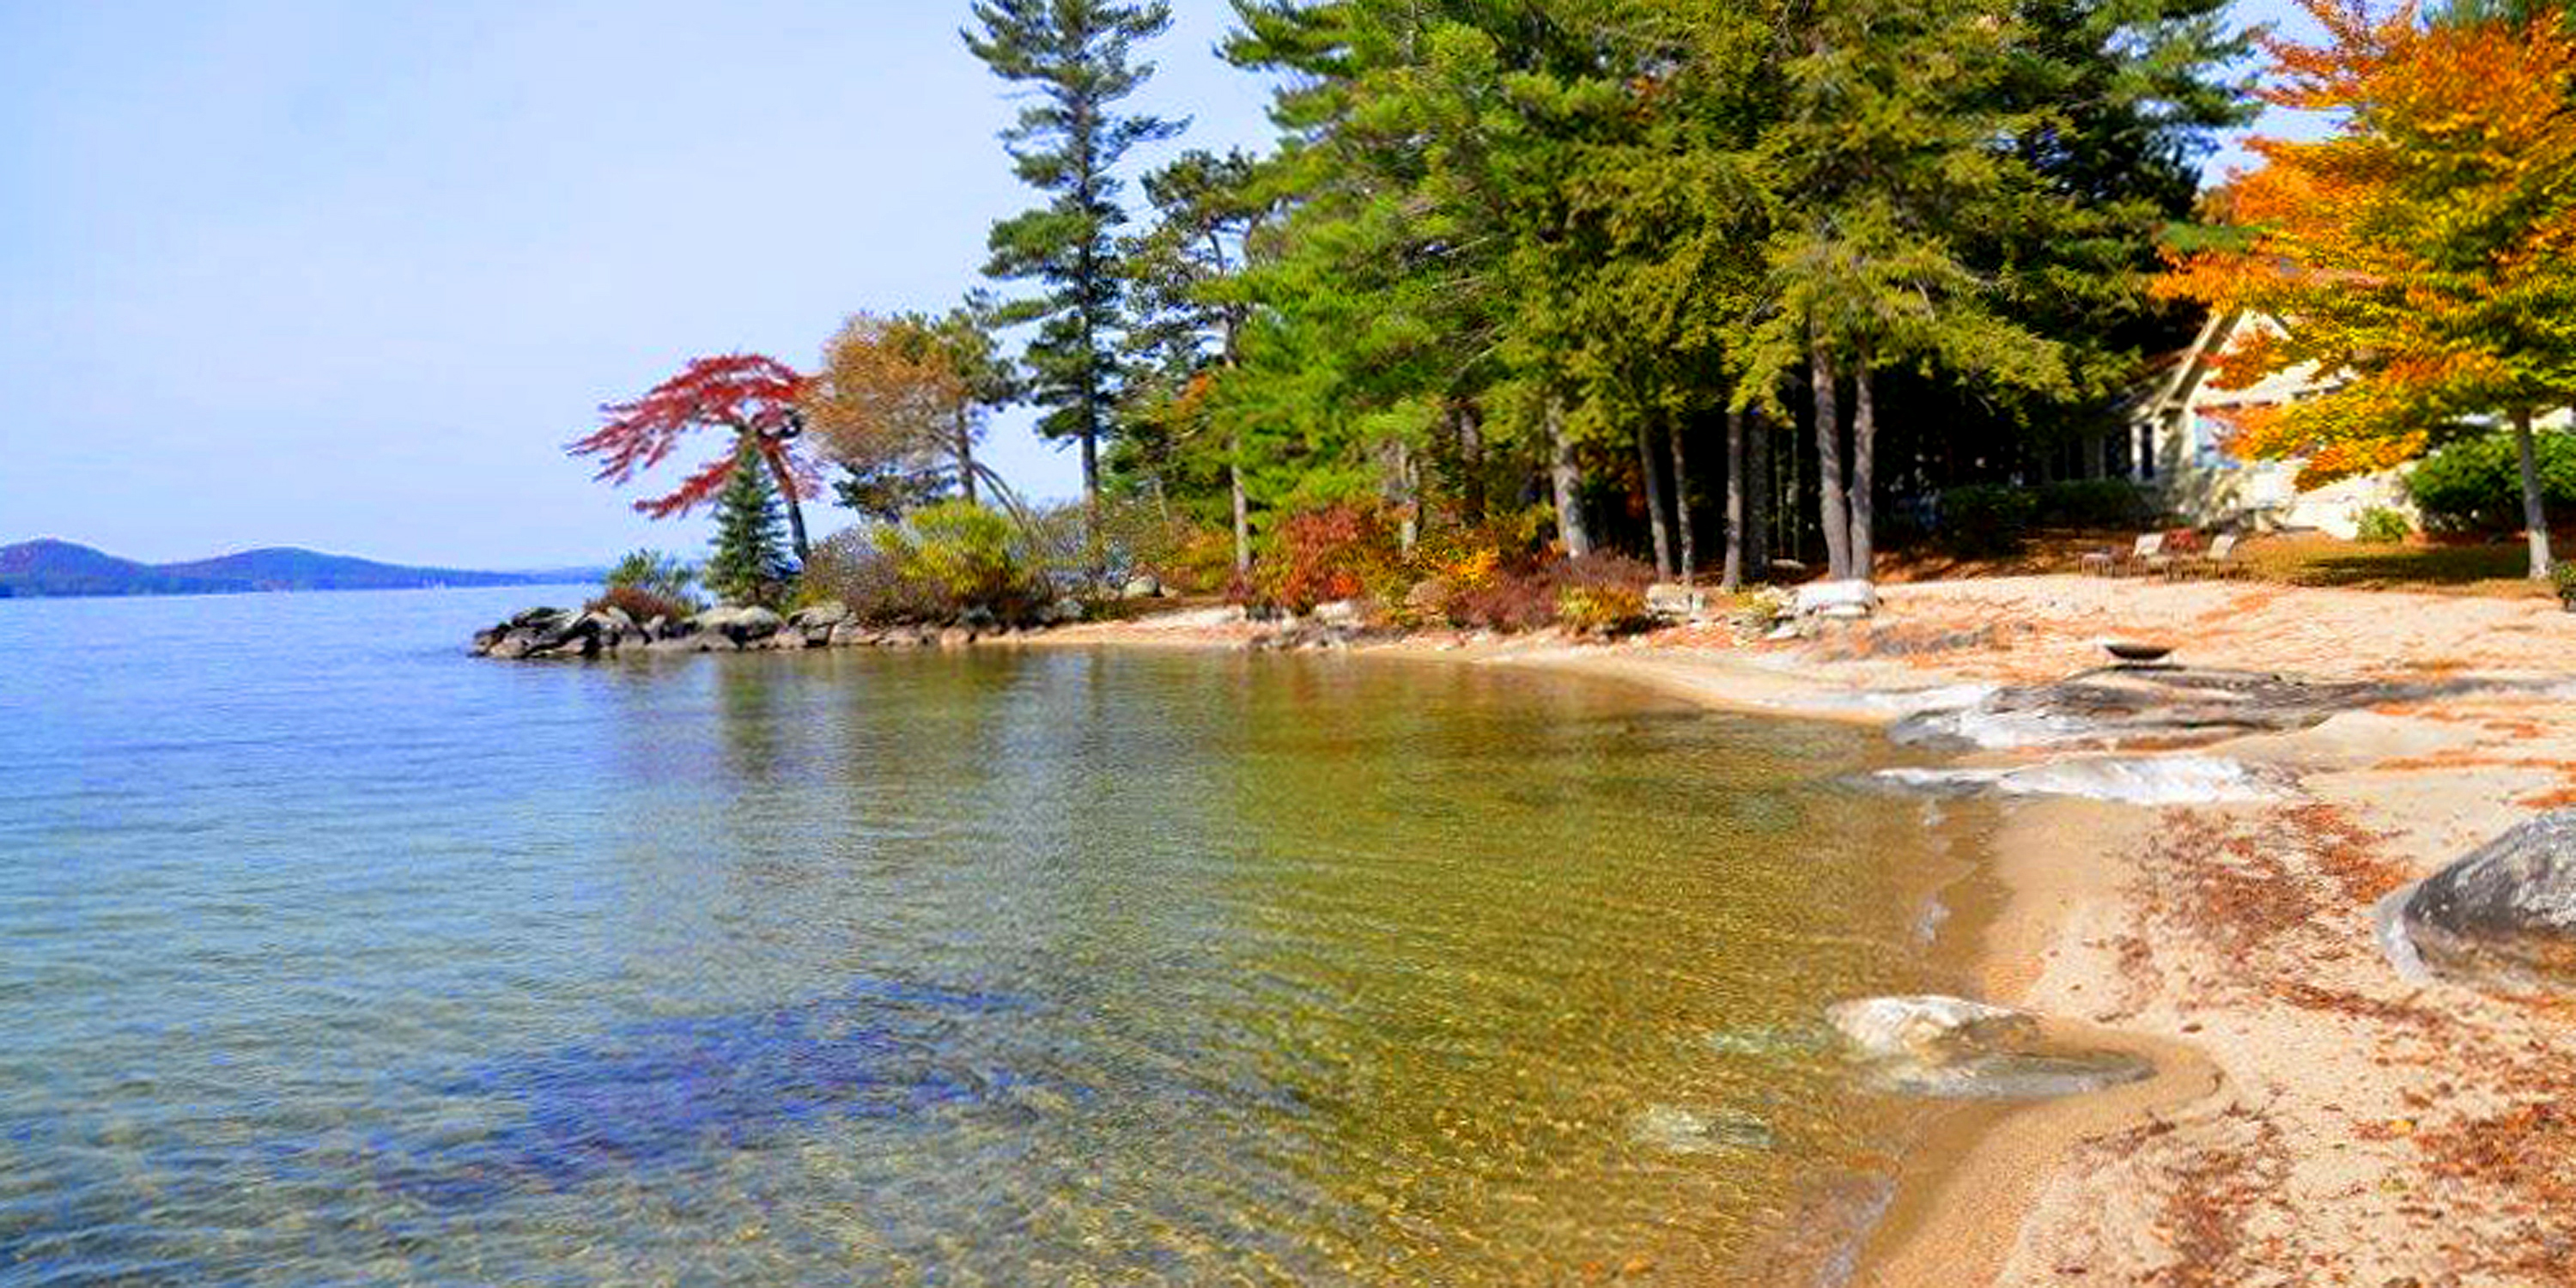 camping photos lake new campgrounds winnipesaukee strafford hampshire our jpg cabins